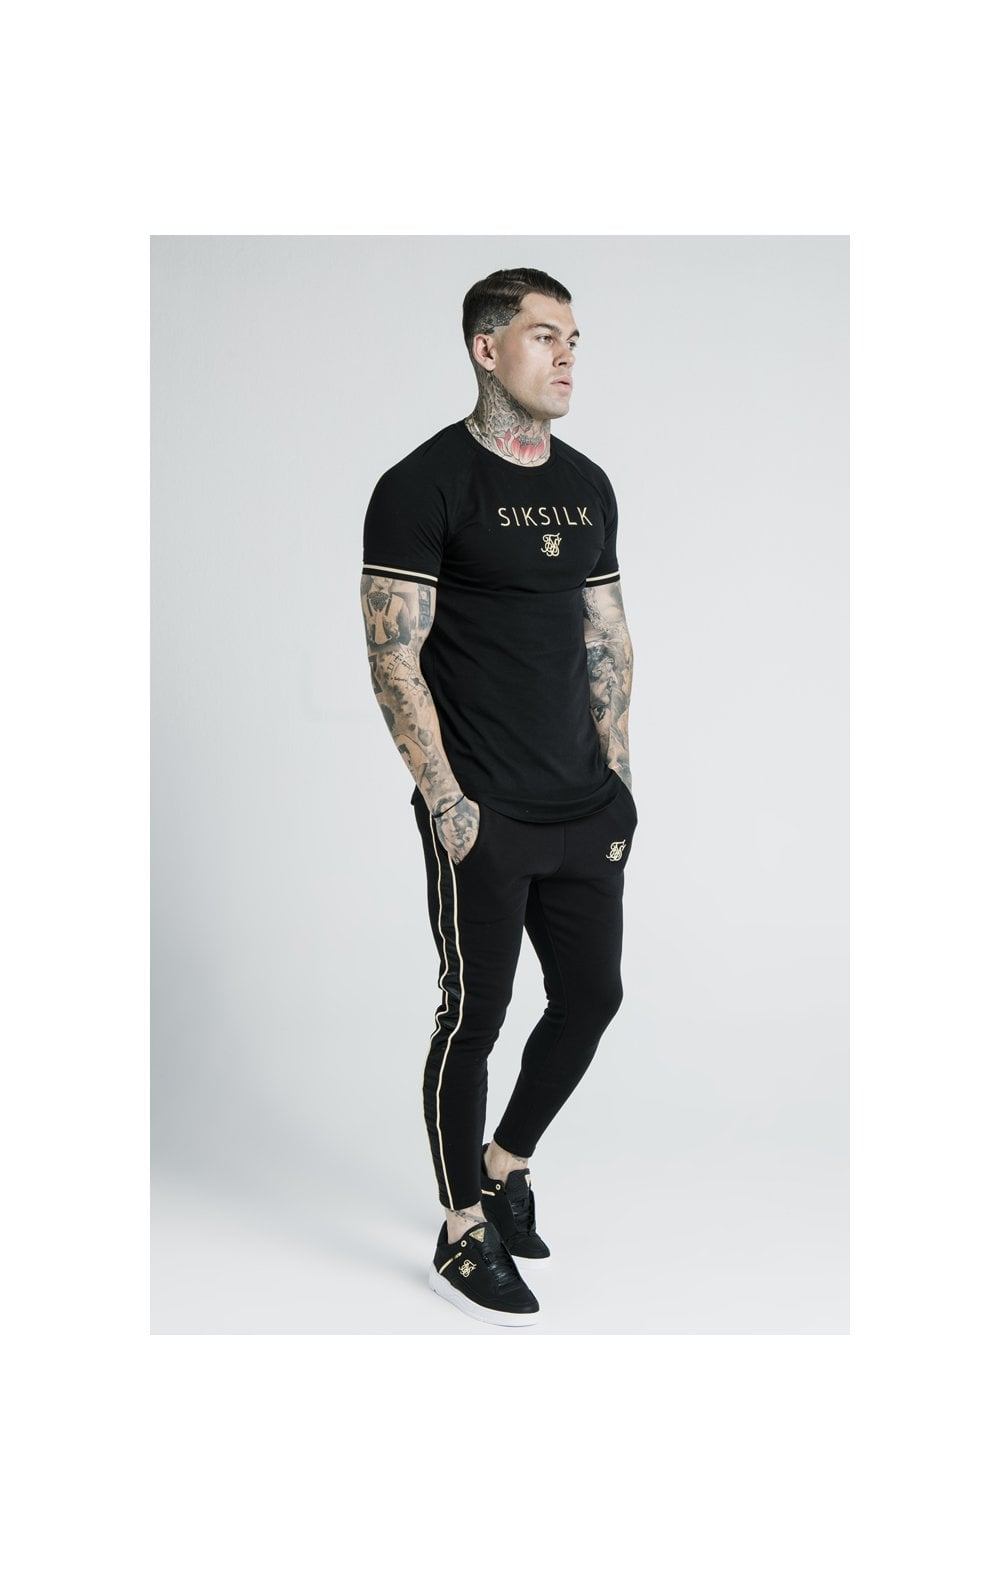 SikSilk X Dani Alves S/S Inset Tech Tee – Black (7)